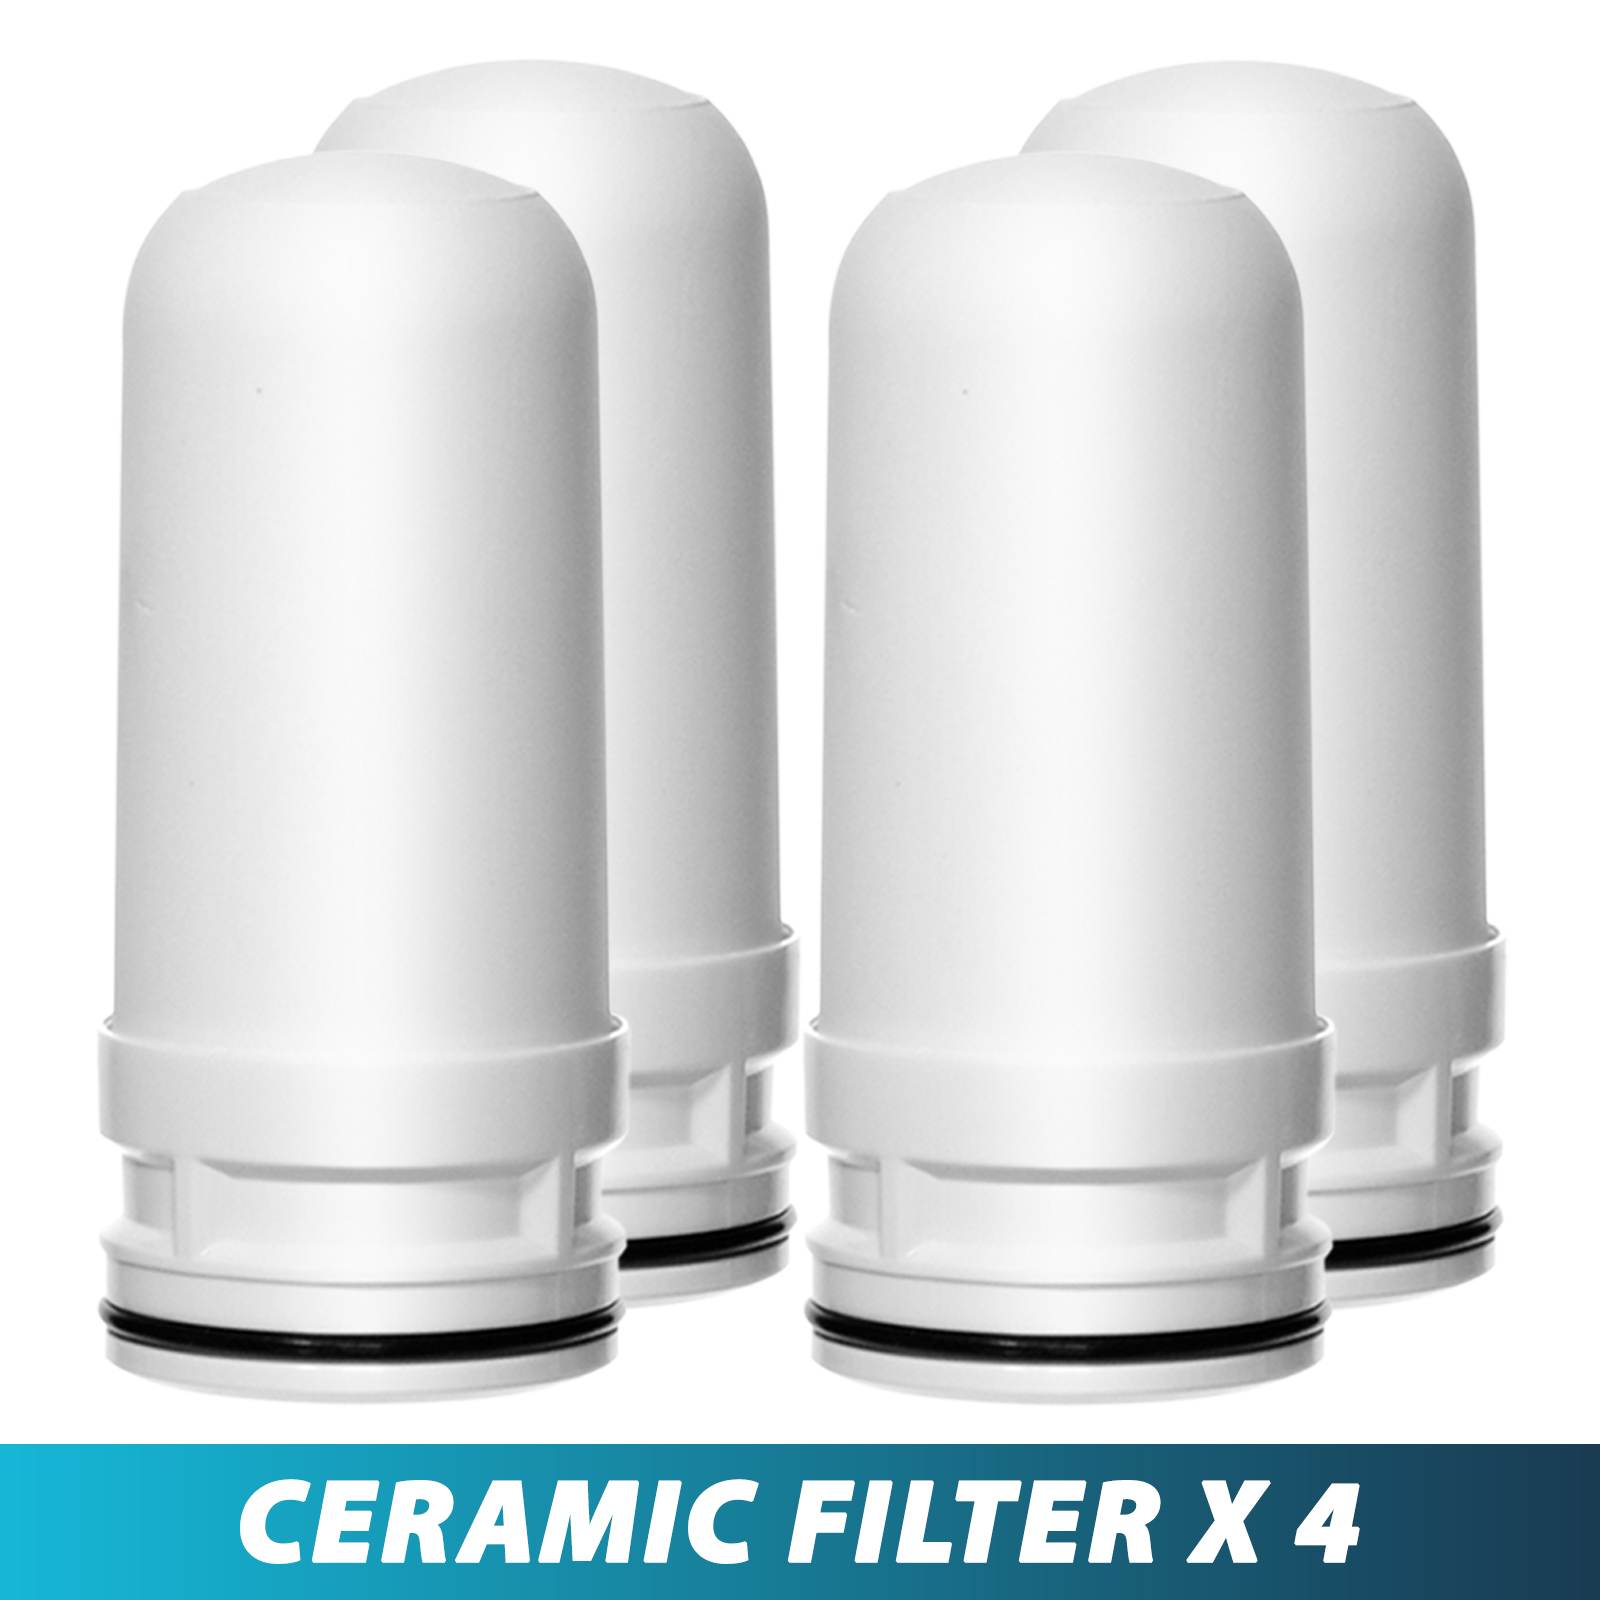 Ceramic Replacement Cartridge for LittleWell Faucet Mount Water Filters DFC1, DFW1, DFW2 (Pack of 4)